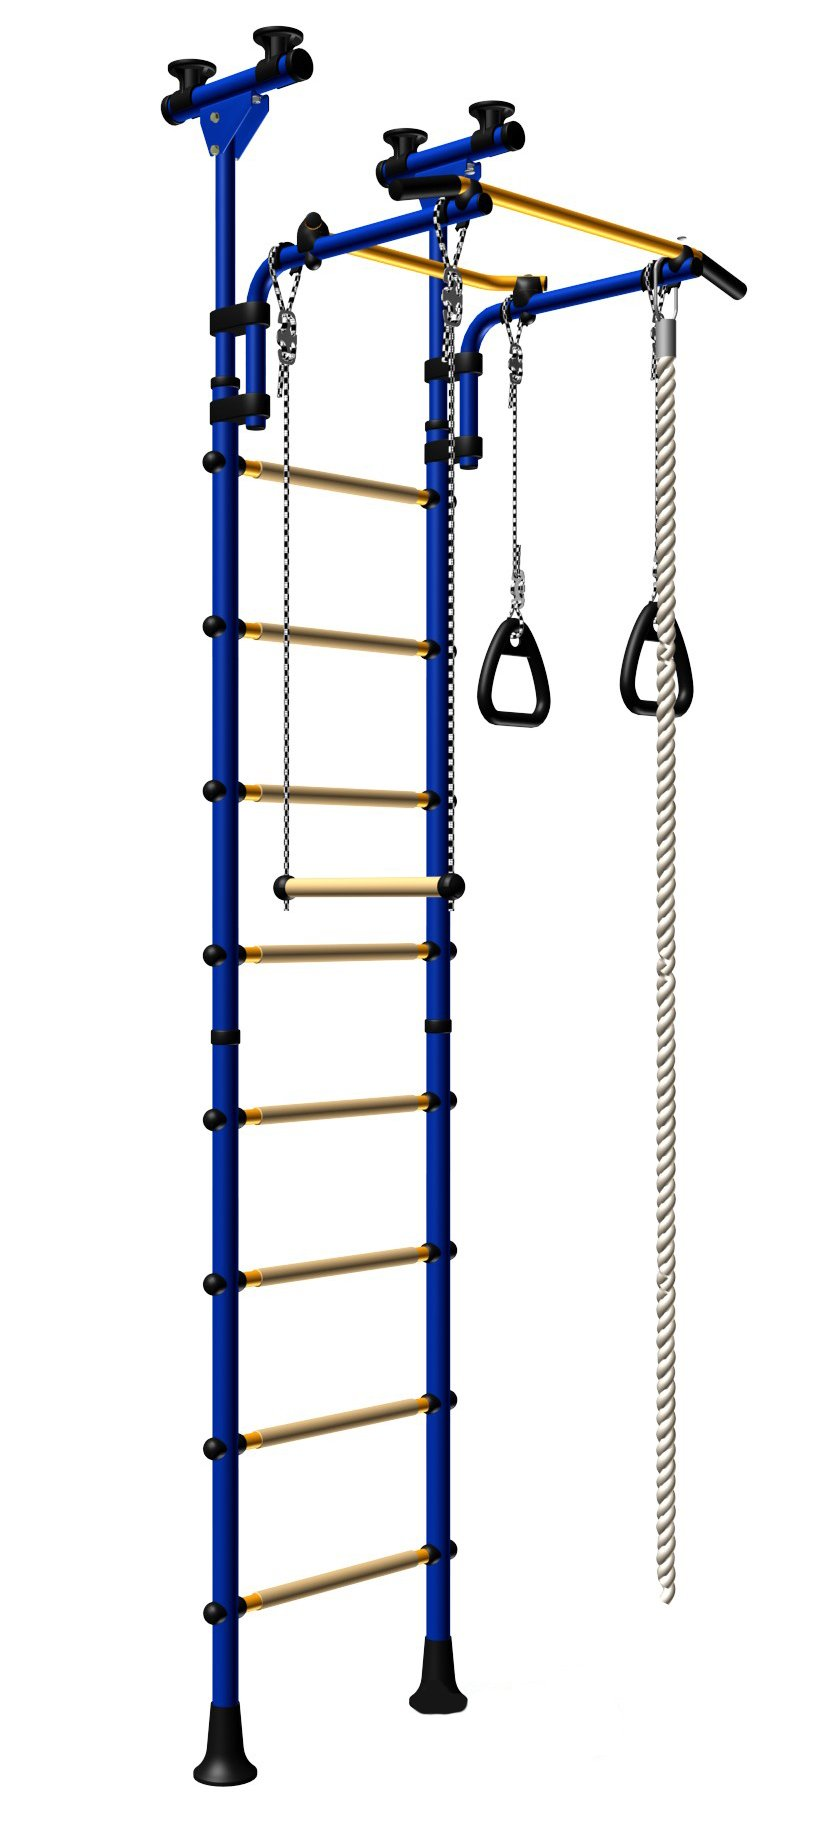 Kids Playground For the Floor - Ceiling / Indoor Gym Training Sport Set with Trapeze Bar Swing, Climber, Climbing Jump Rope, Gymnastic Rings / Suit for Backyard, School and Playroom / Comet 5 (Blue)